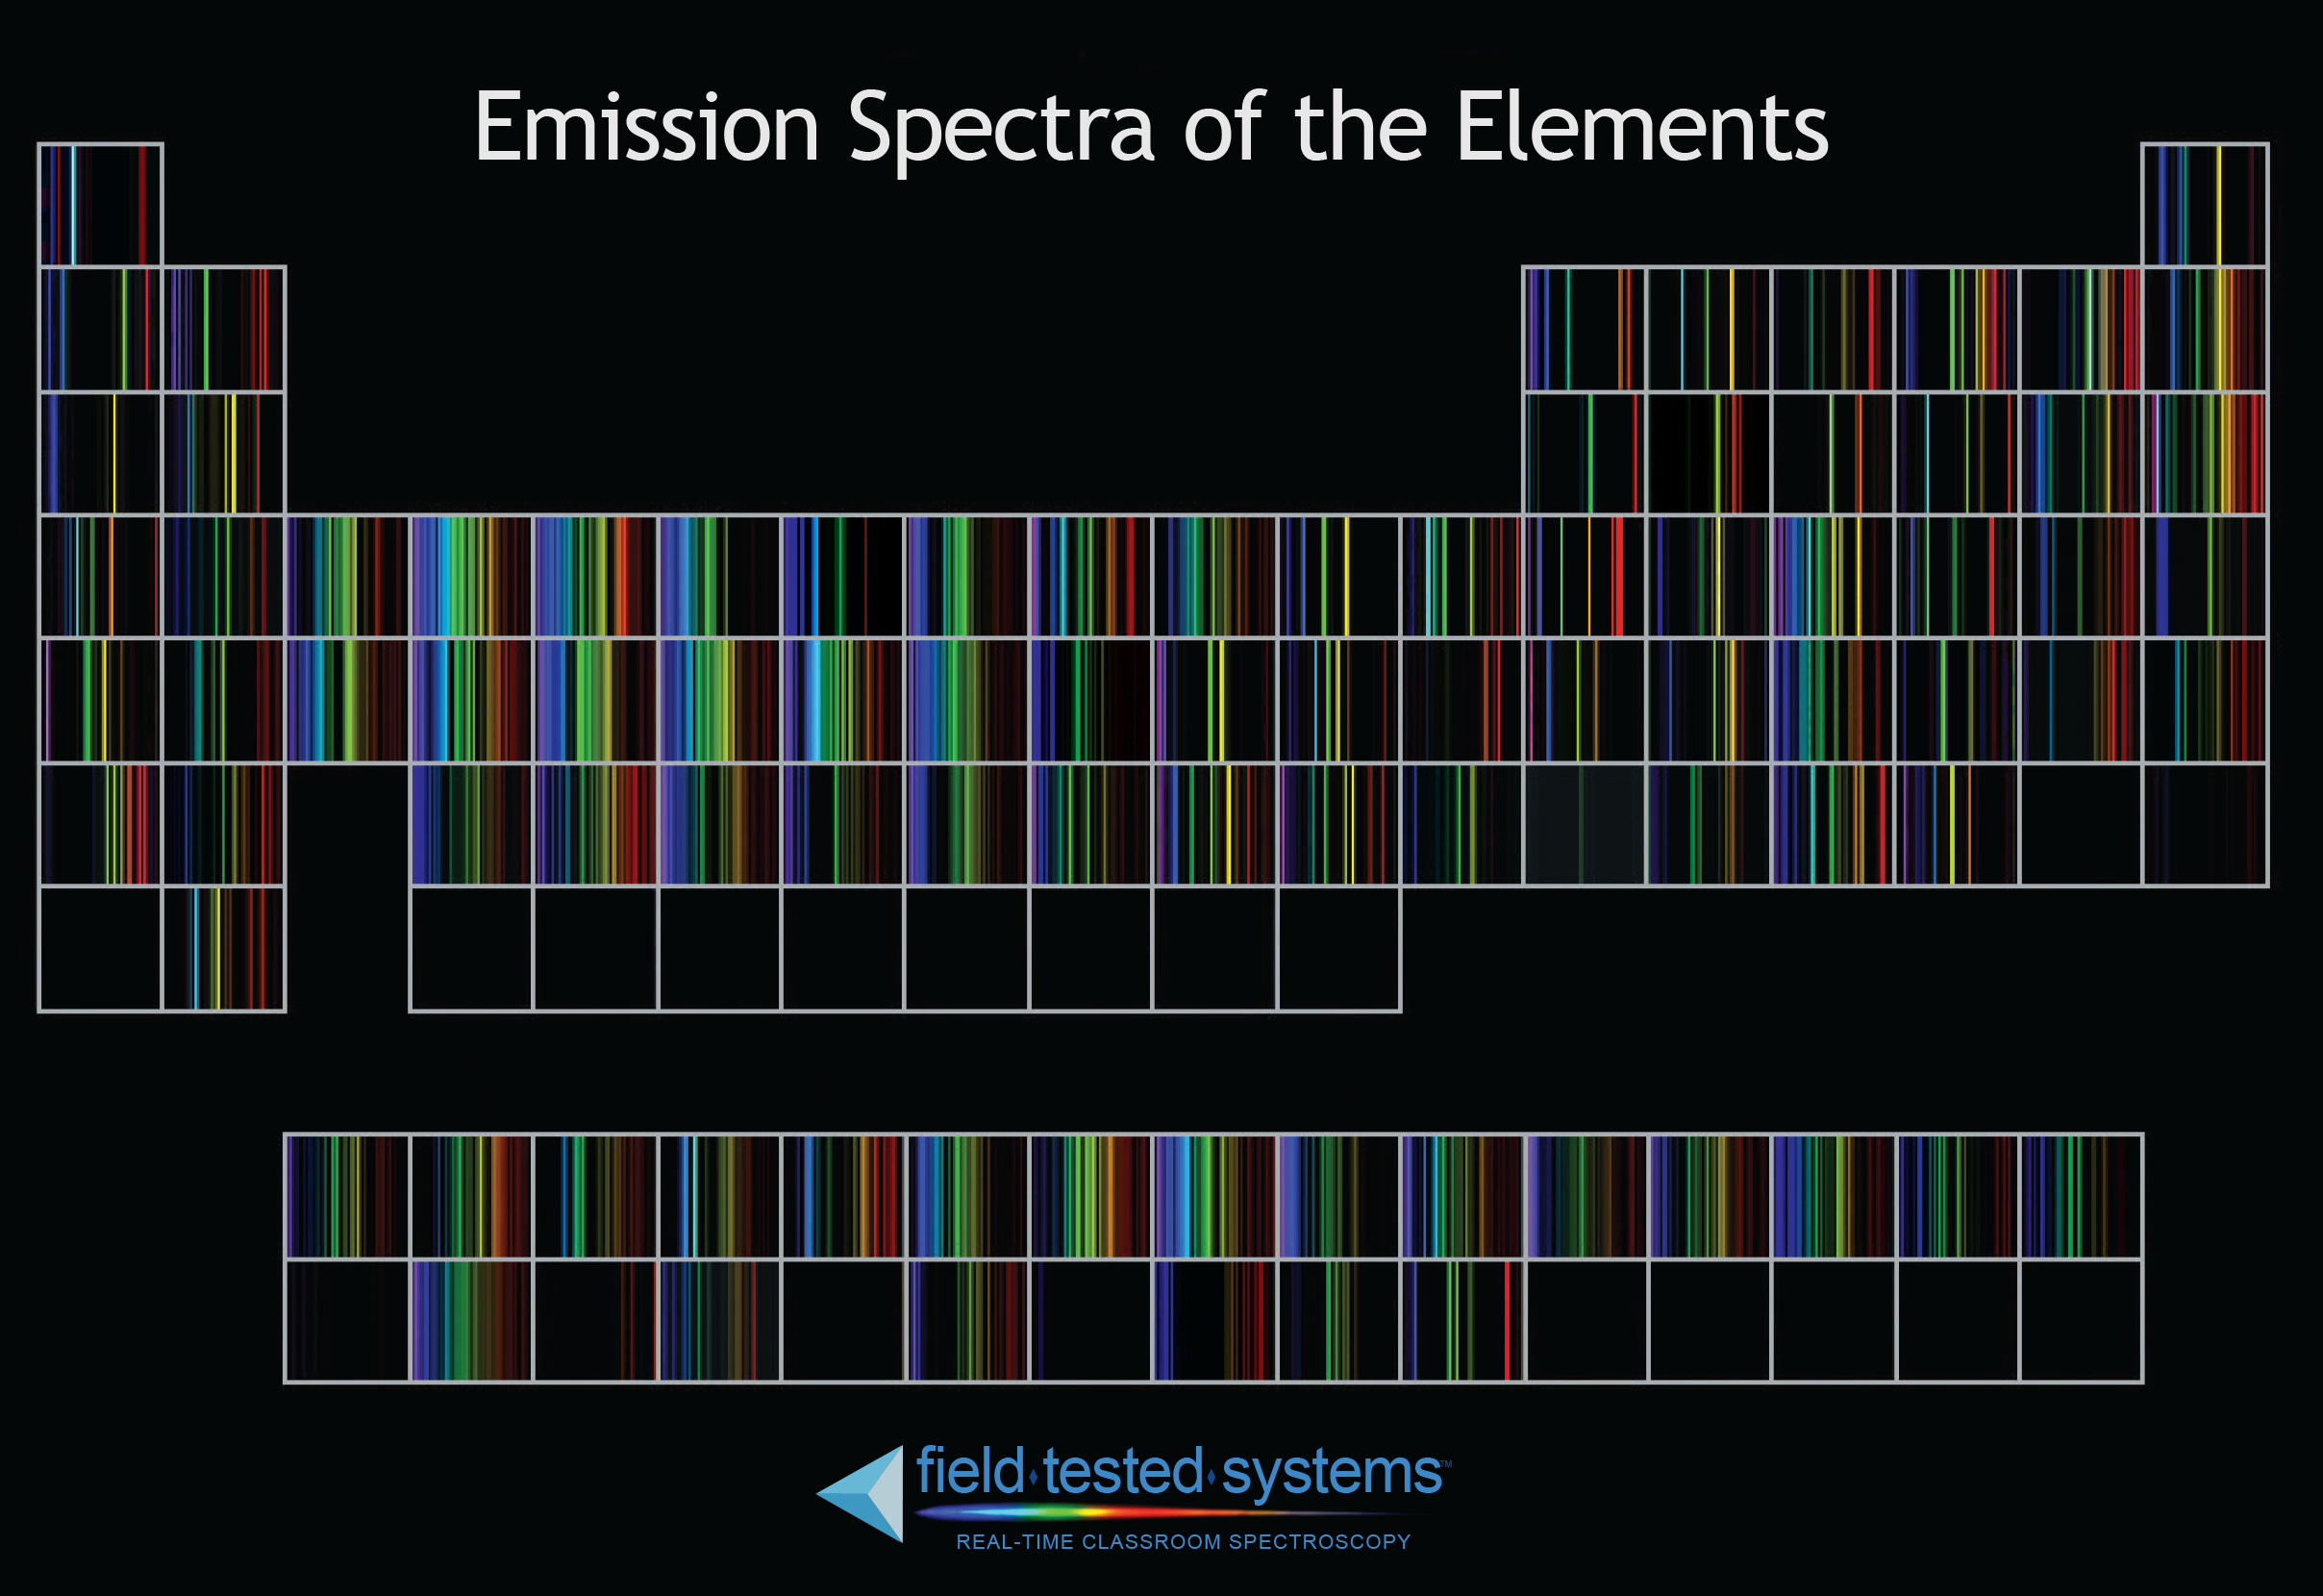 All matter has a resonant frequency that is represented in this periodic table of visible spectra gamestrikefo Gallery